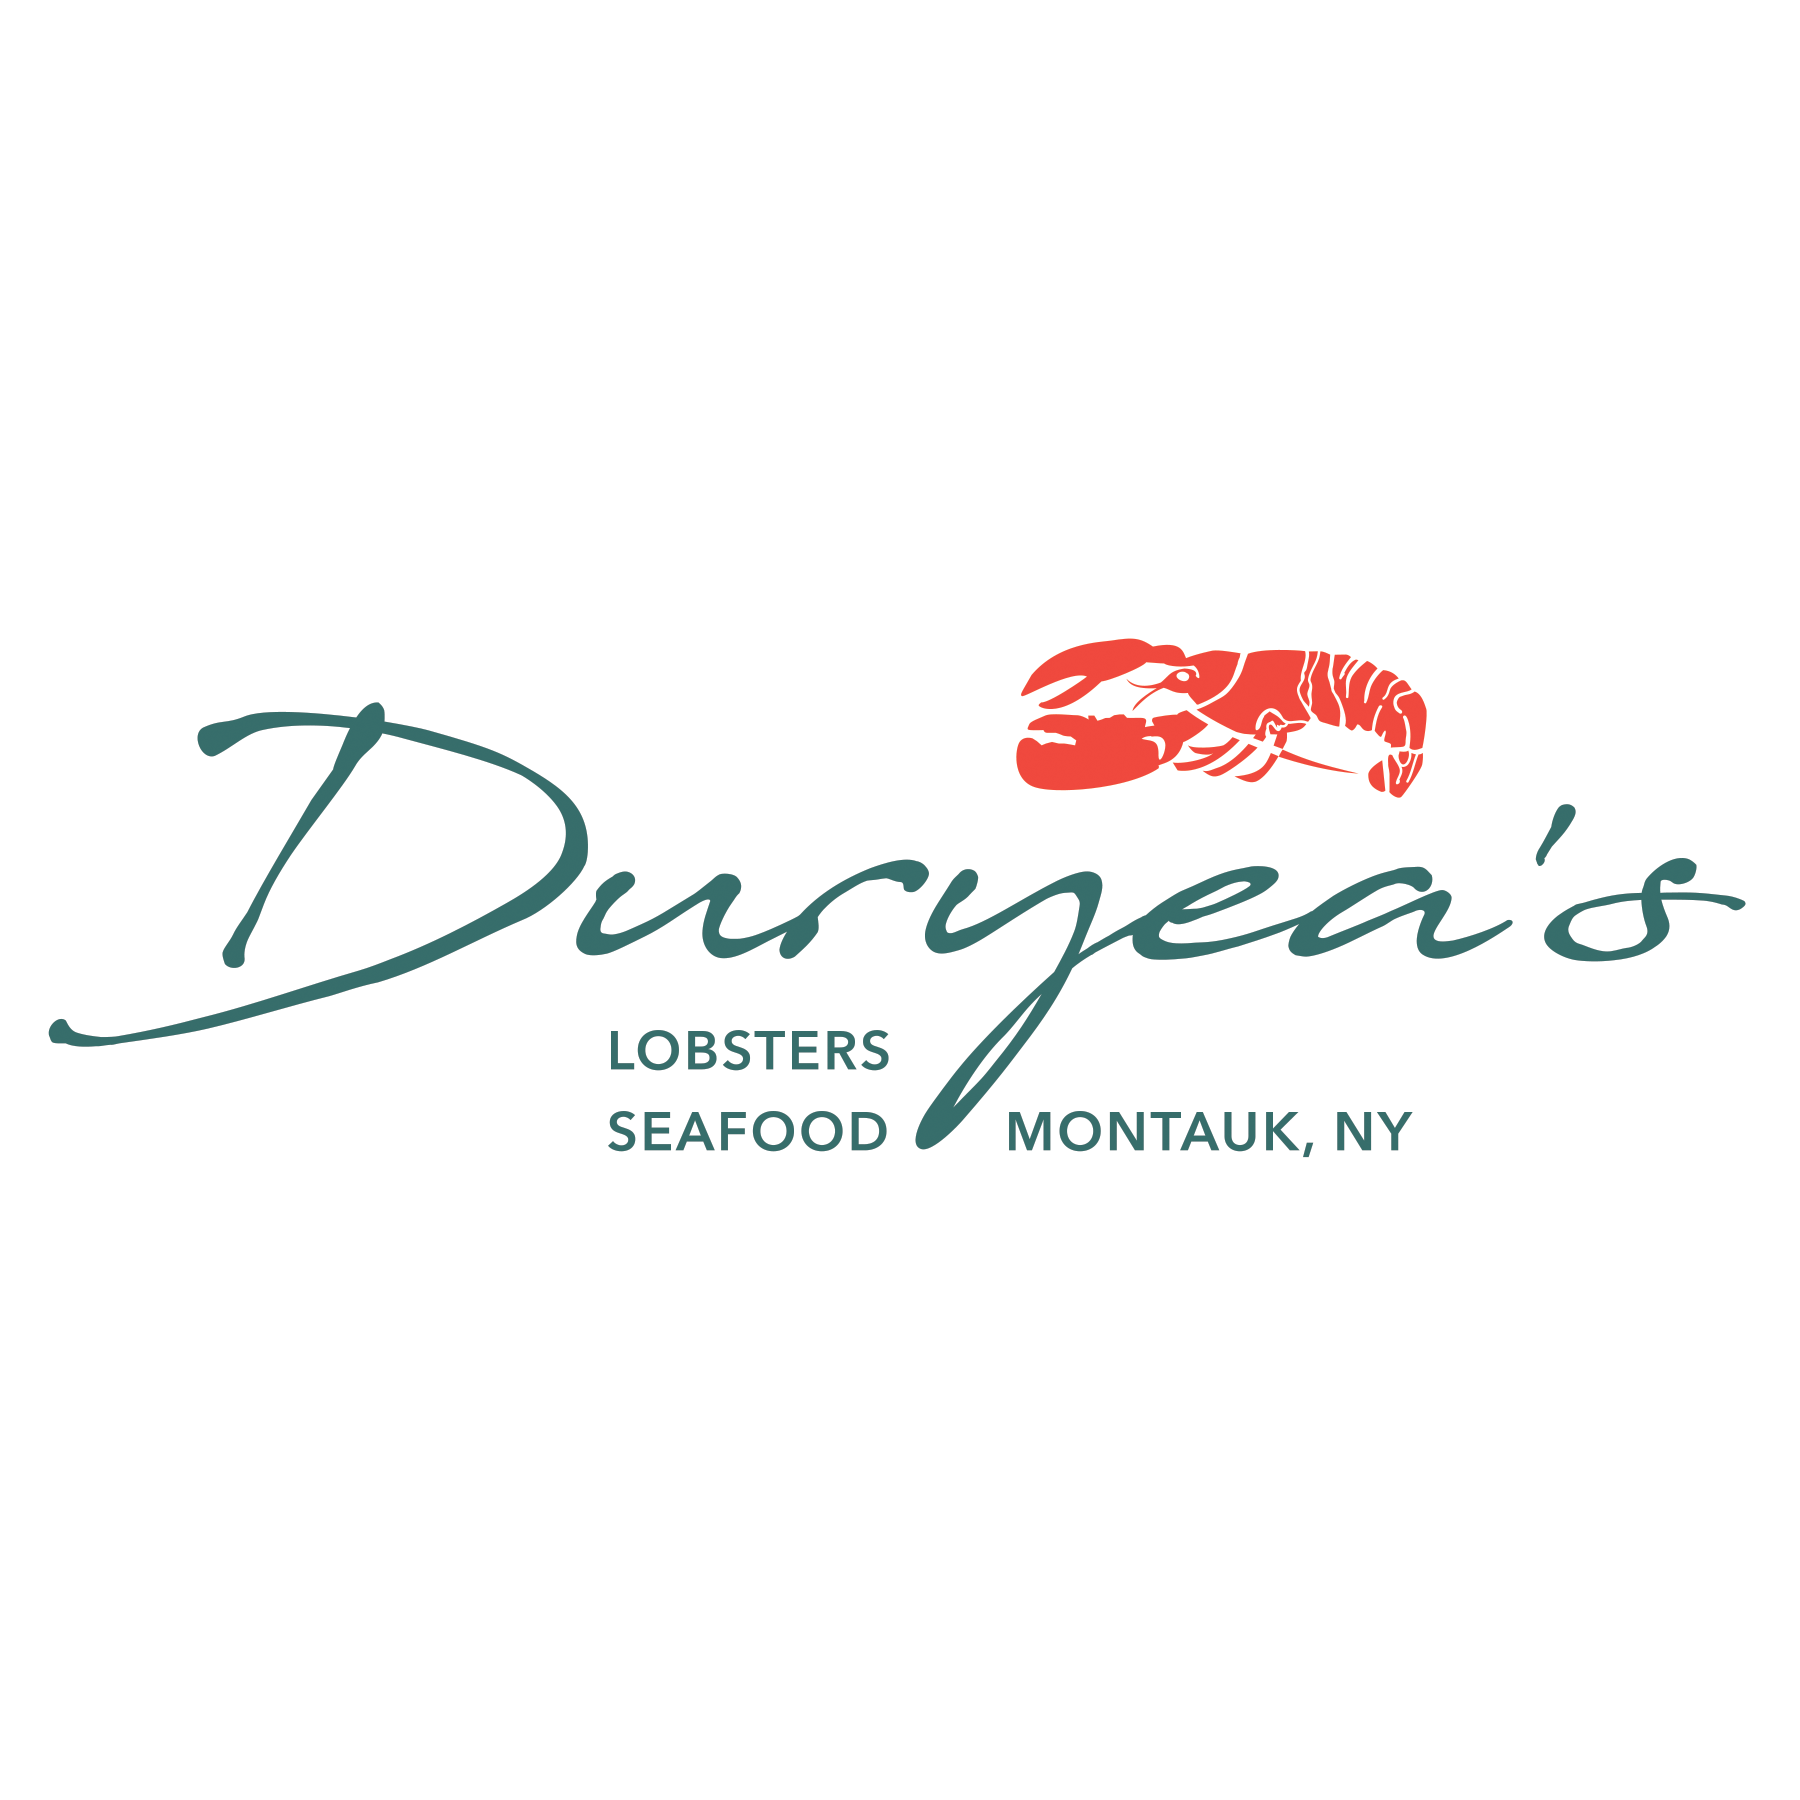 Duryea's Seafood Restaurant and Market